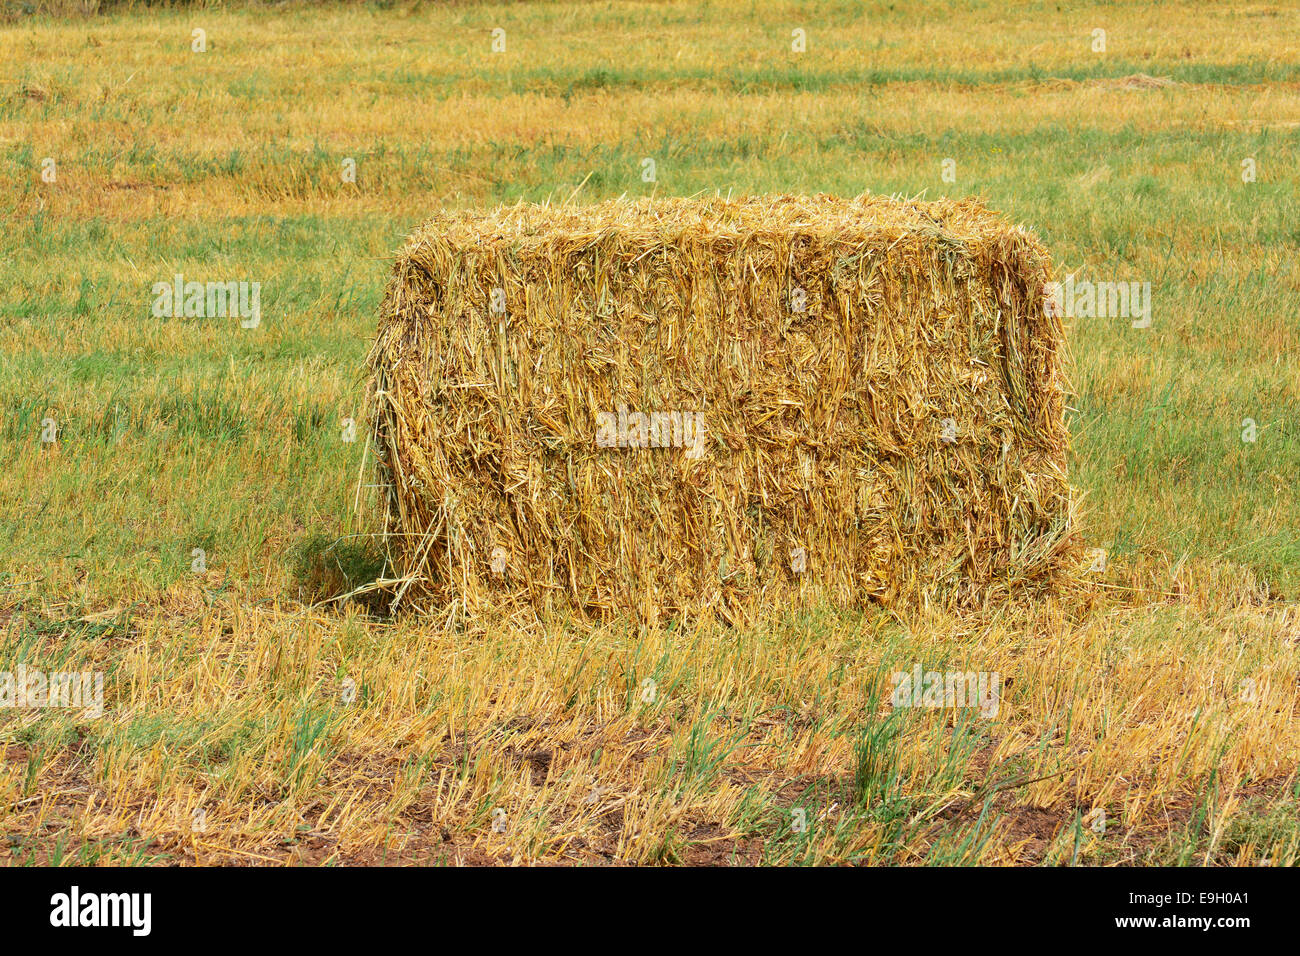 Straw bale in the field - Stock Image